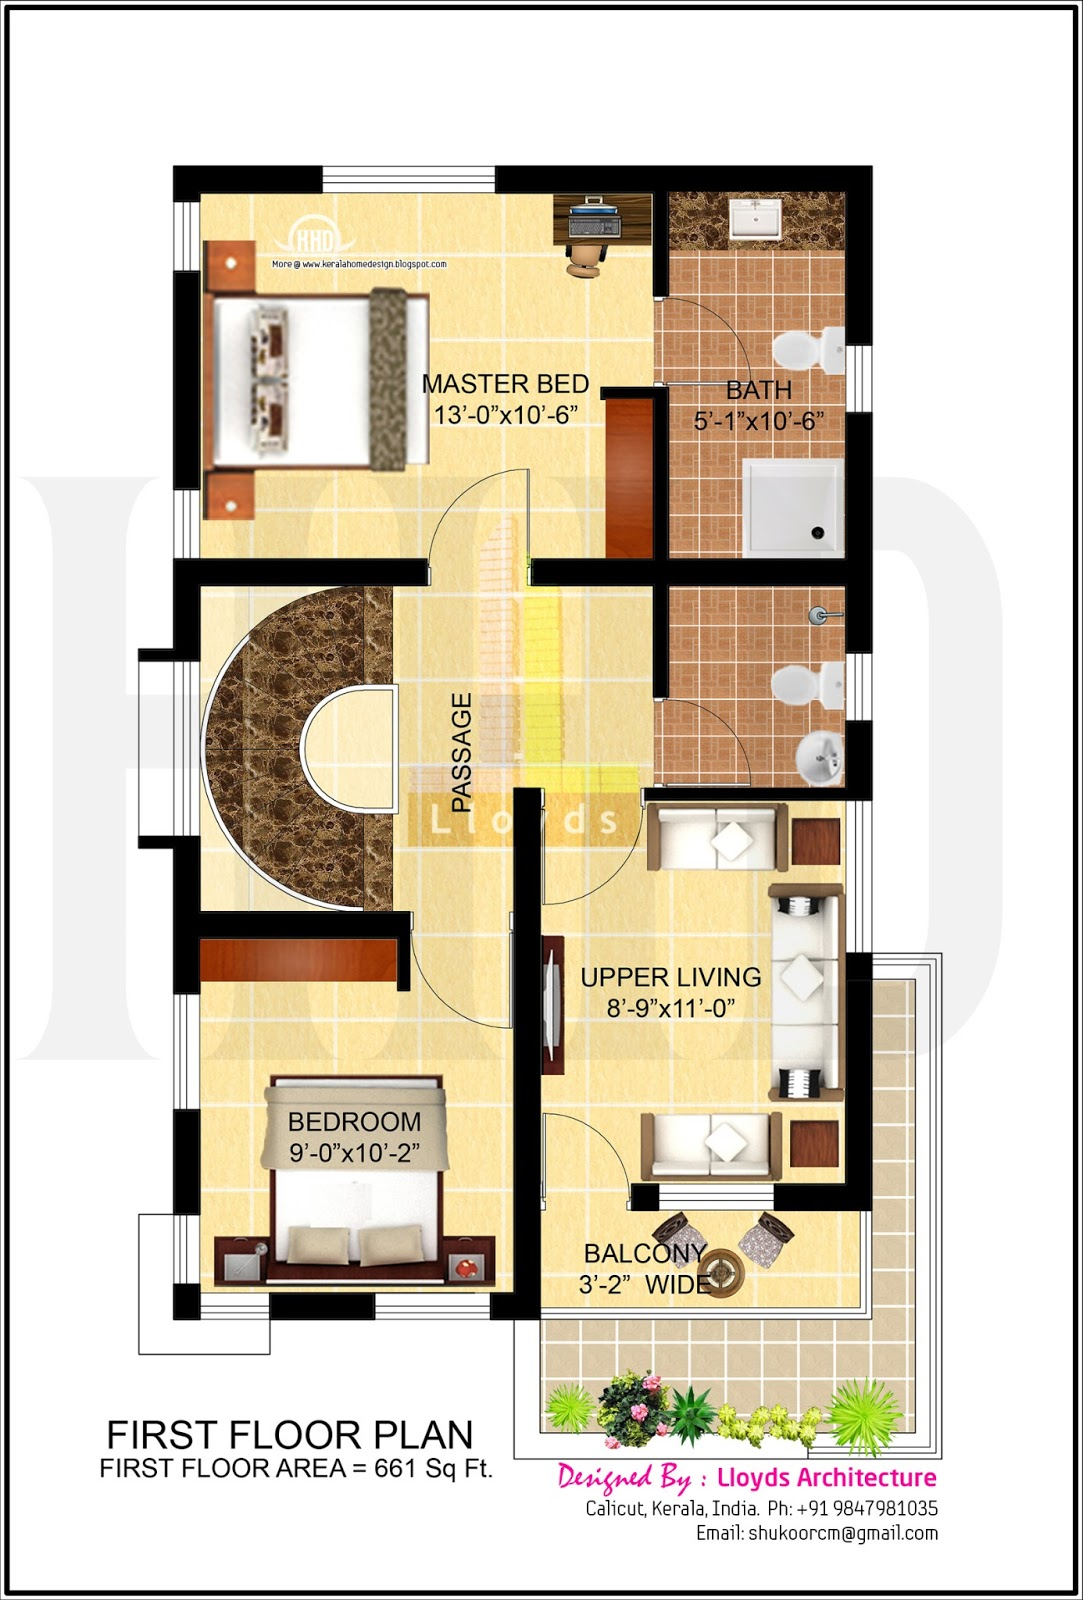 4 bedroom house plan in less than 3 cents kerala home for House designer plan